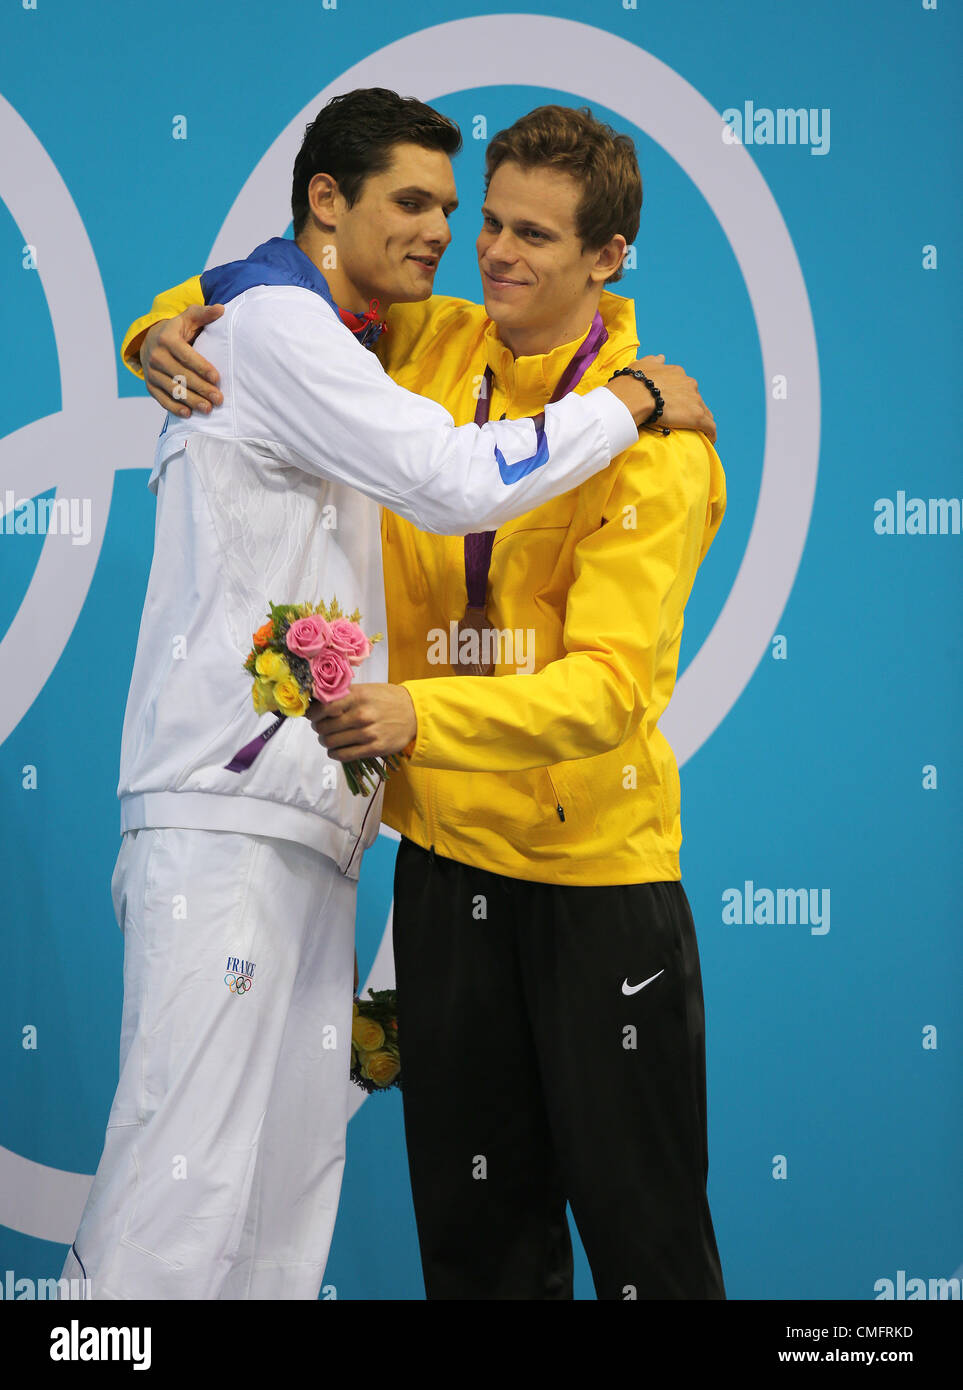 FLORENT MANAUDOU & CESAR CIELO FRANCE & BRAZIL STRATFORD LONDON ENGLAND 03 August 2012 - Stock Image